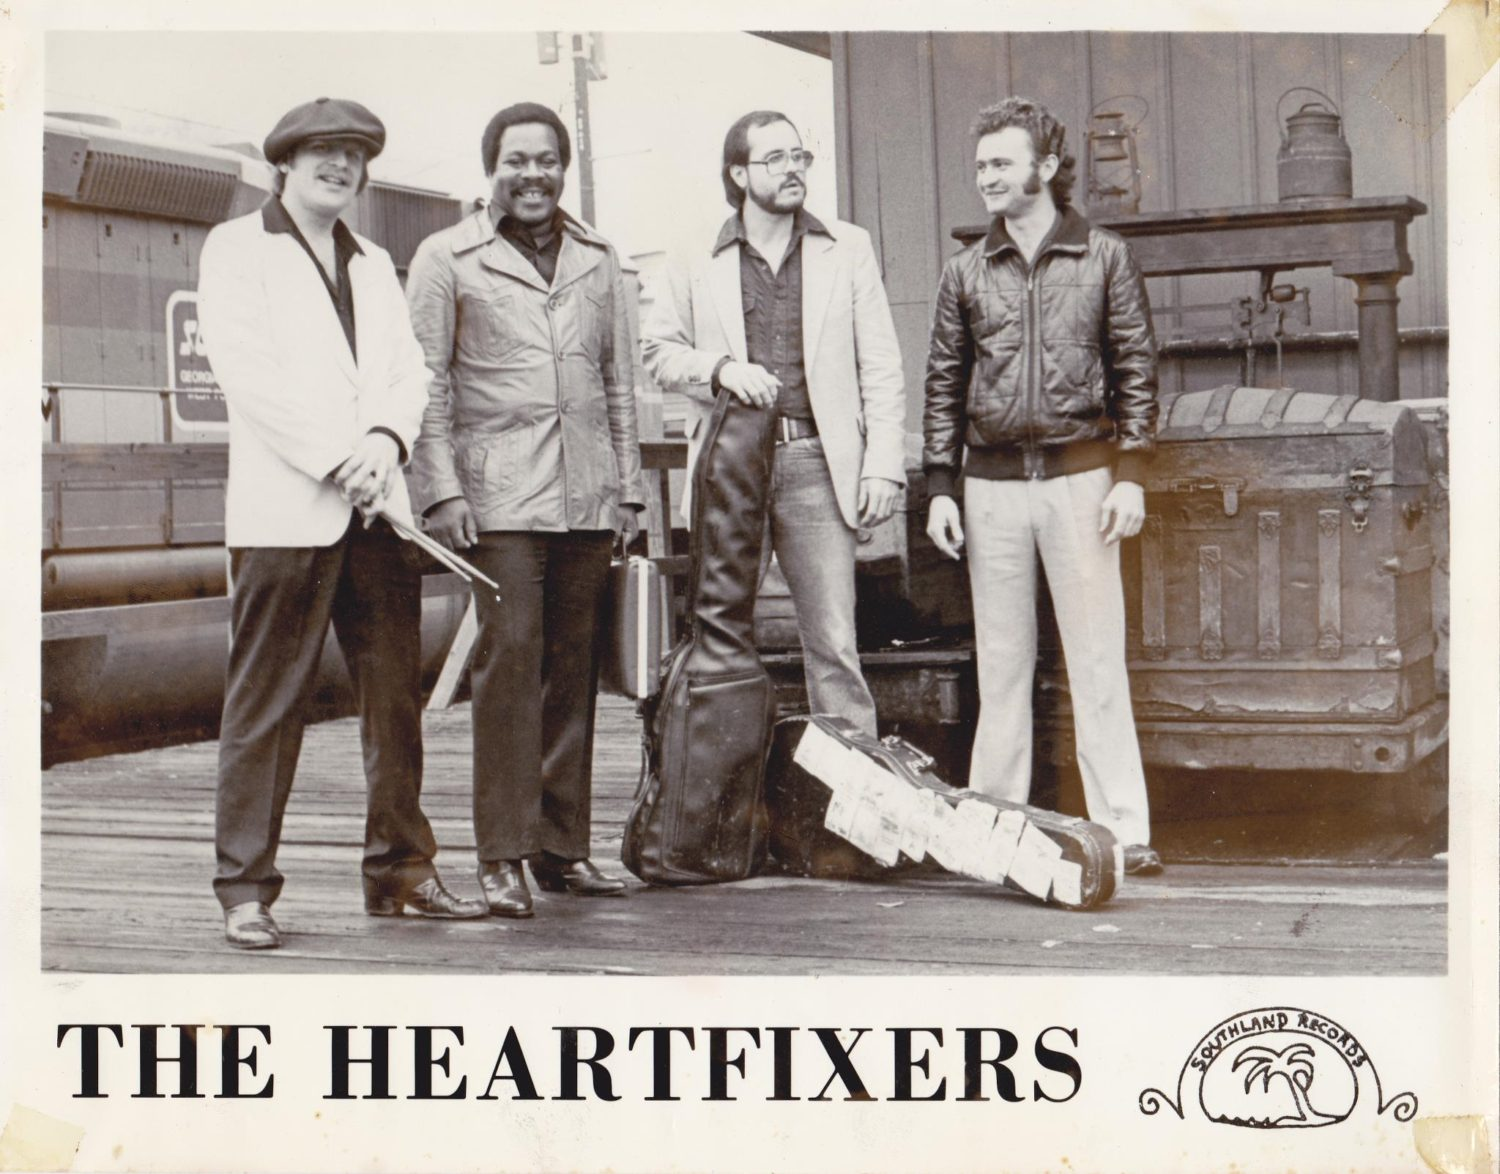 The Heartfixers photo provided by Tinsley Ellis